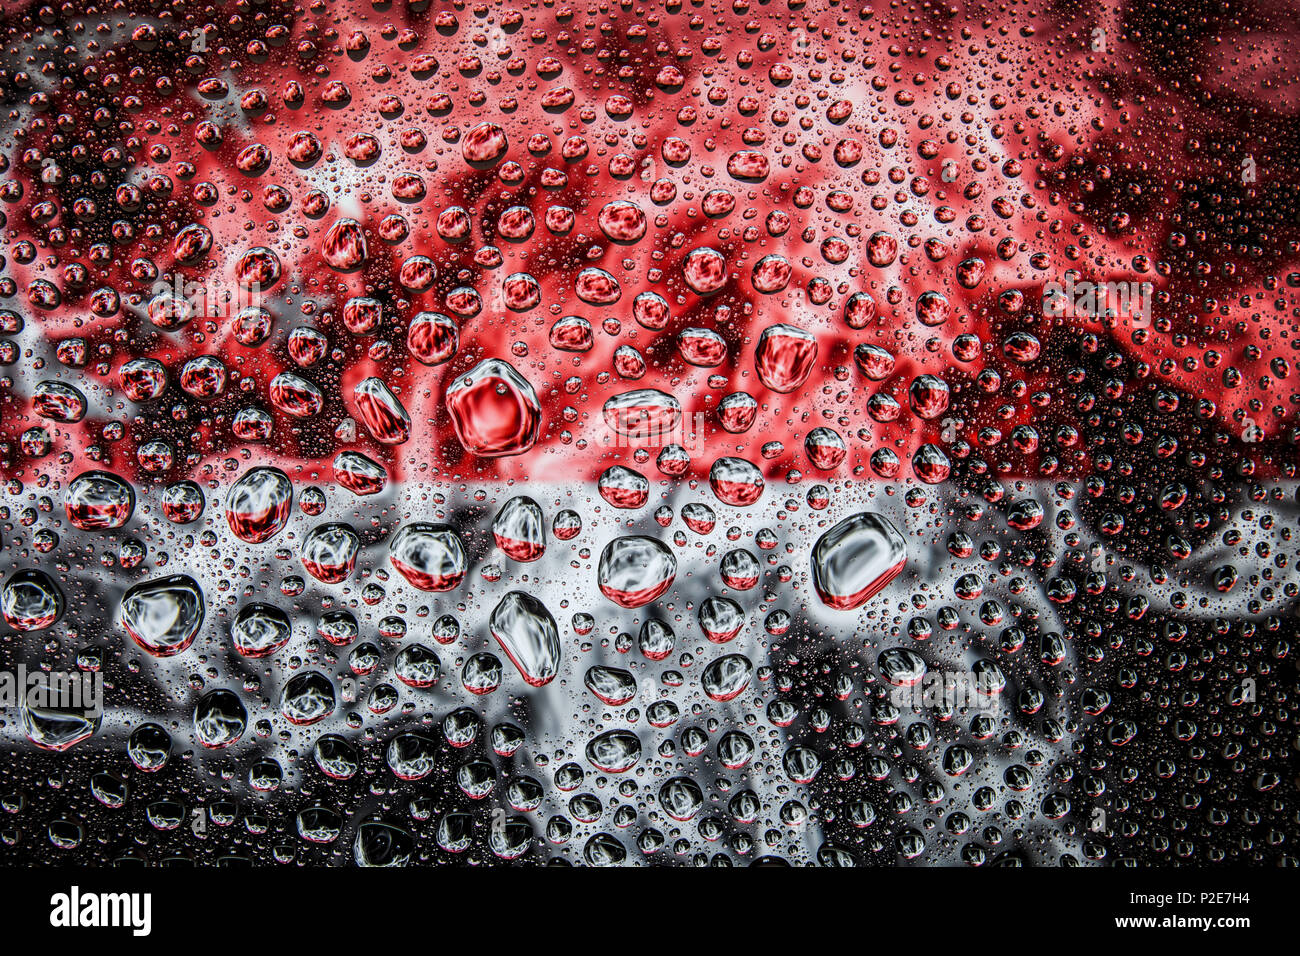 Close-up of a drop of water against a background of the national flag of  Singapore on an isolated background - Stock Image